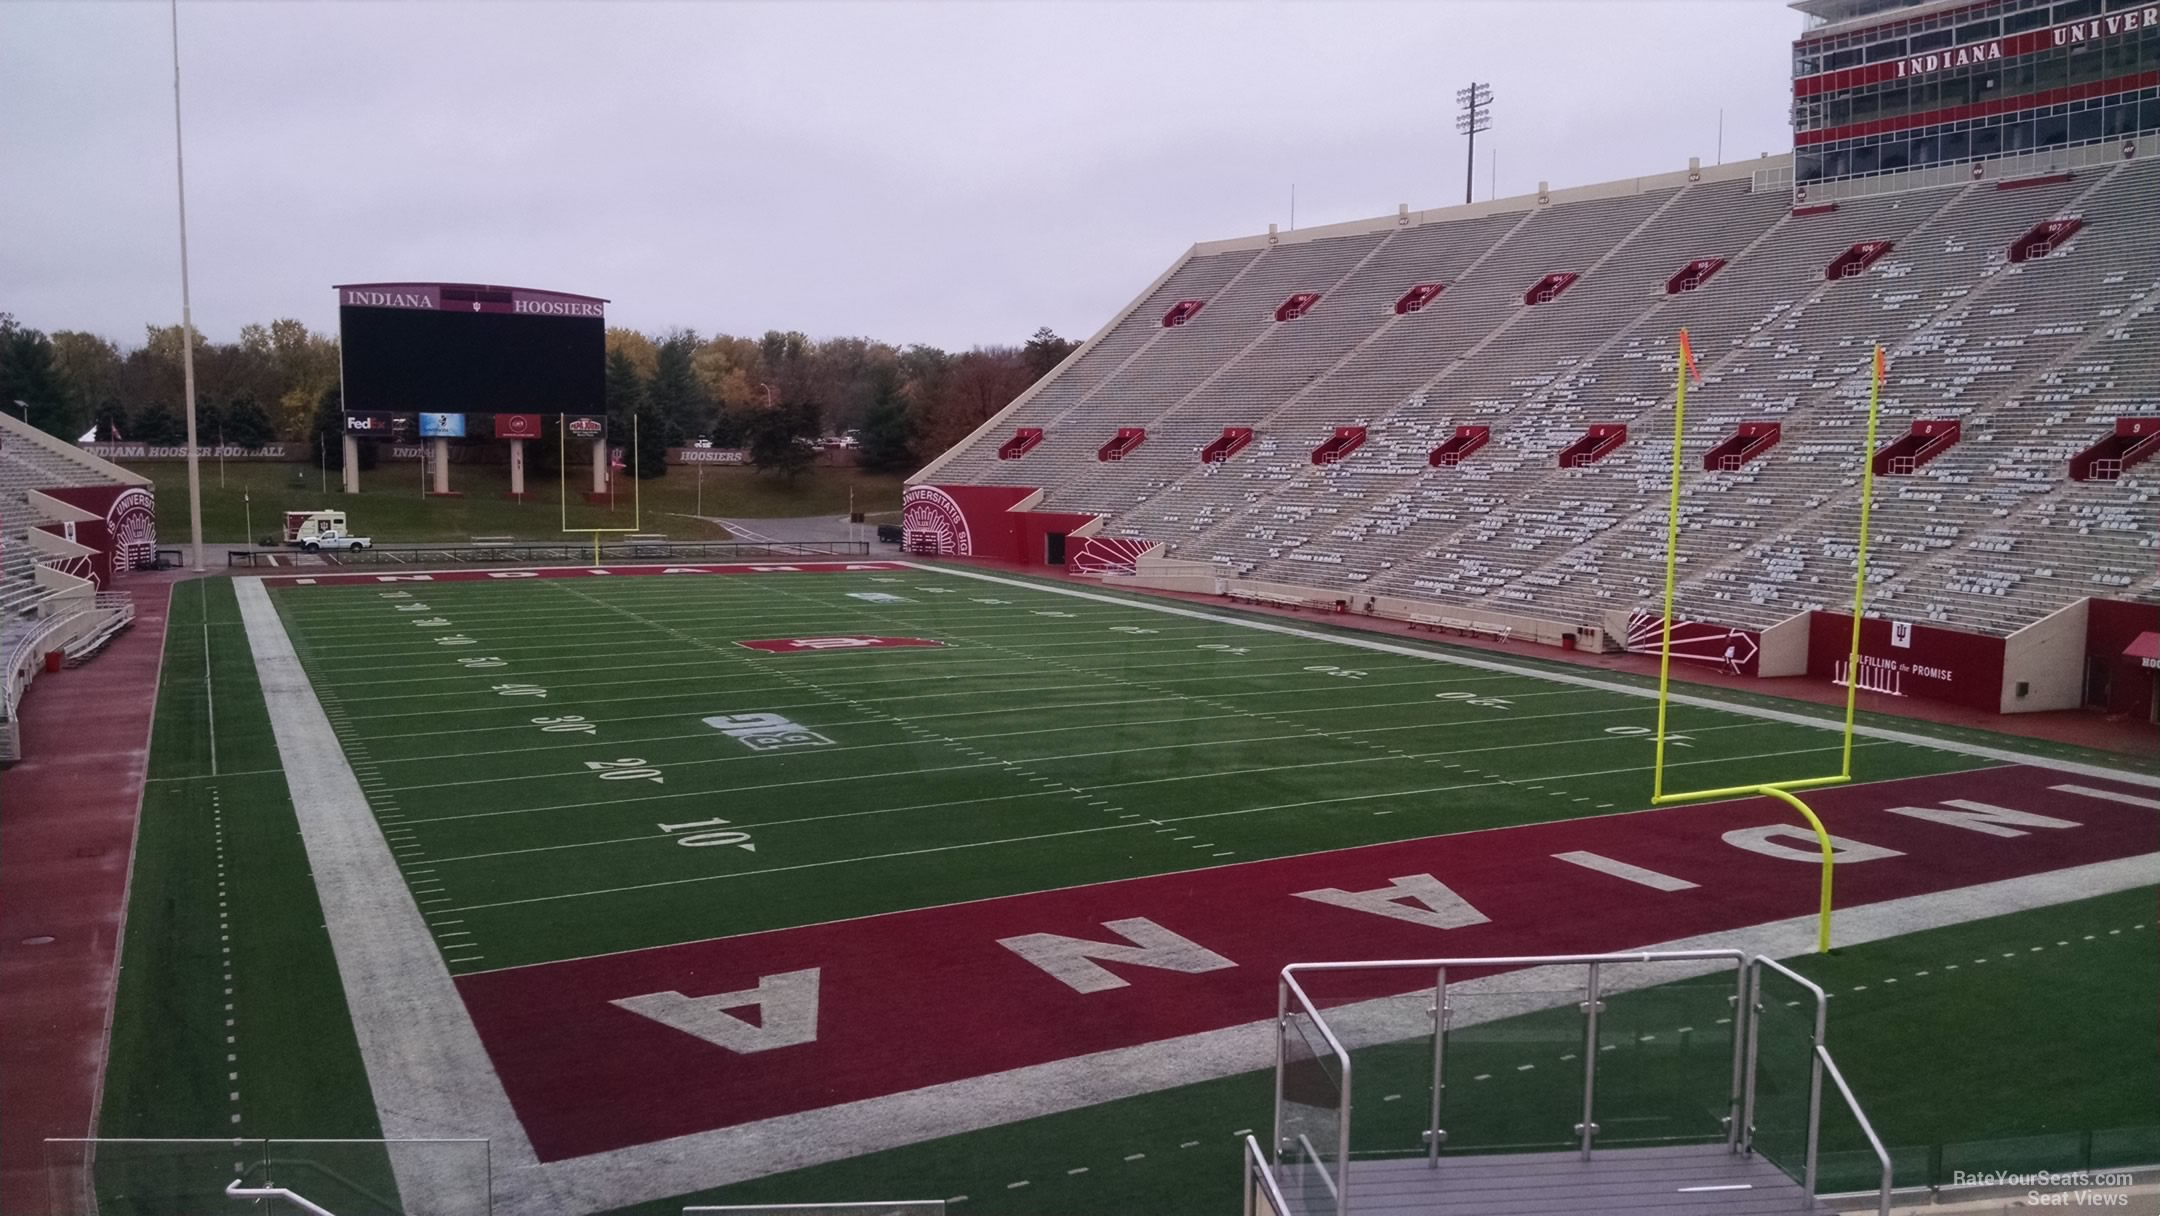 Seat View for Memorial Stadium - IN Section 19, Row 30